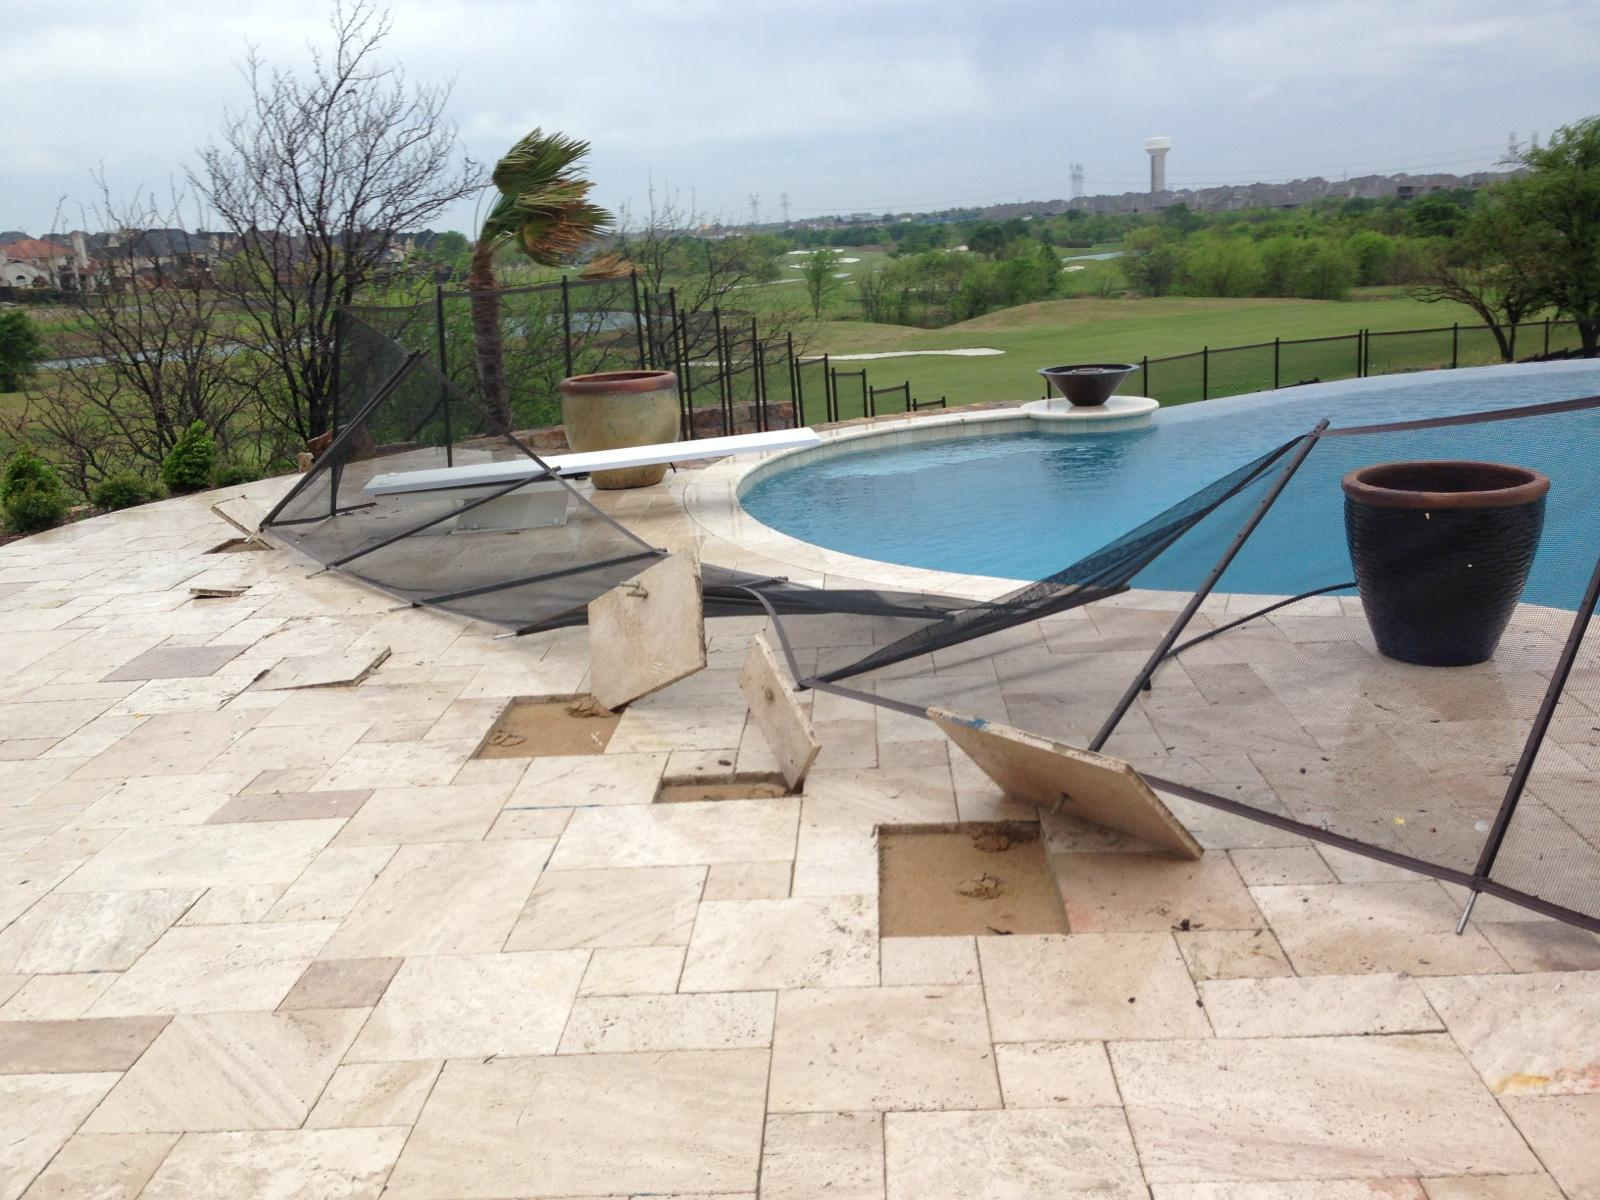 Poor do it yourself installations guardian pool fence systems the wrong way to install fencing in pavers solutioingenieria Images